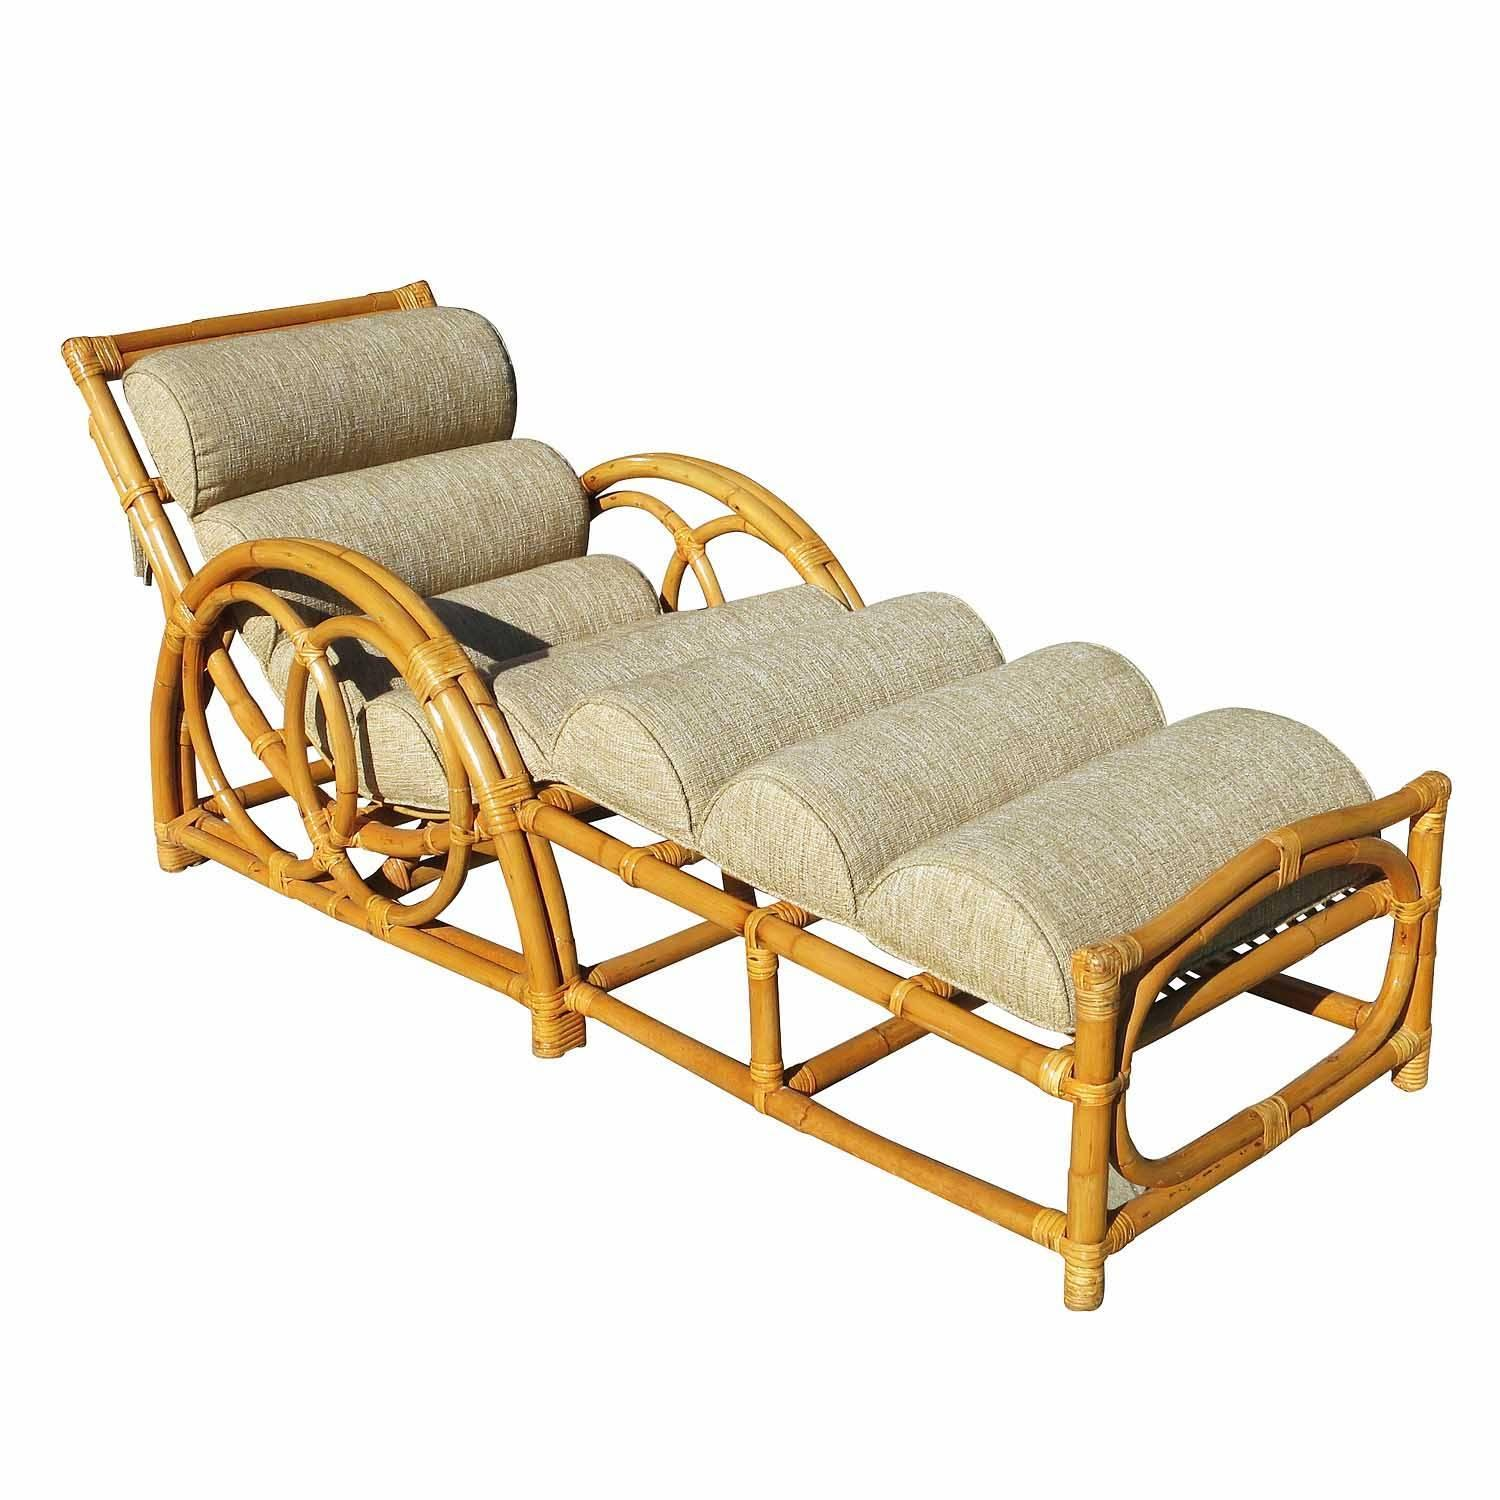 Half moon rattan chaise longue chair for sale at 1stdibs for Chaise and a half